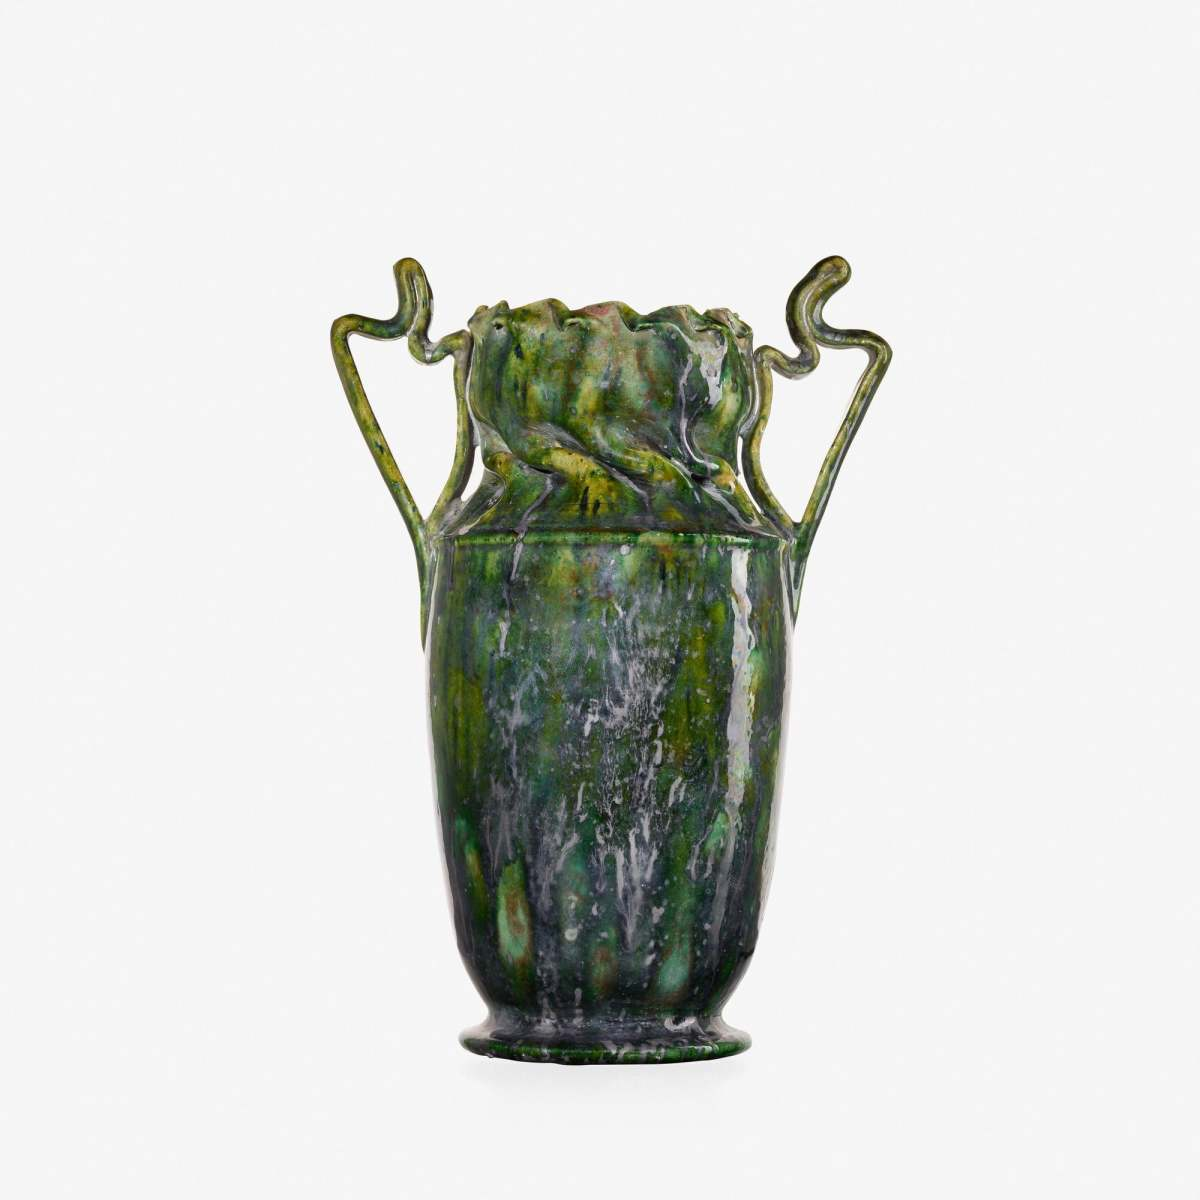 "Exceptional, large vase, 1897-1900, with a deep in-body twist, ribbon handles, and green and gunmetal sponged-on glaze, 9-3/4"" h × 7"" w × 4"" d; sold at Rago for $40,000. From the collection of James Carpenter."